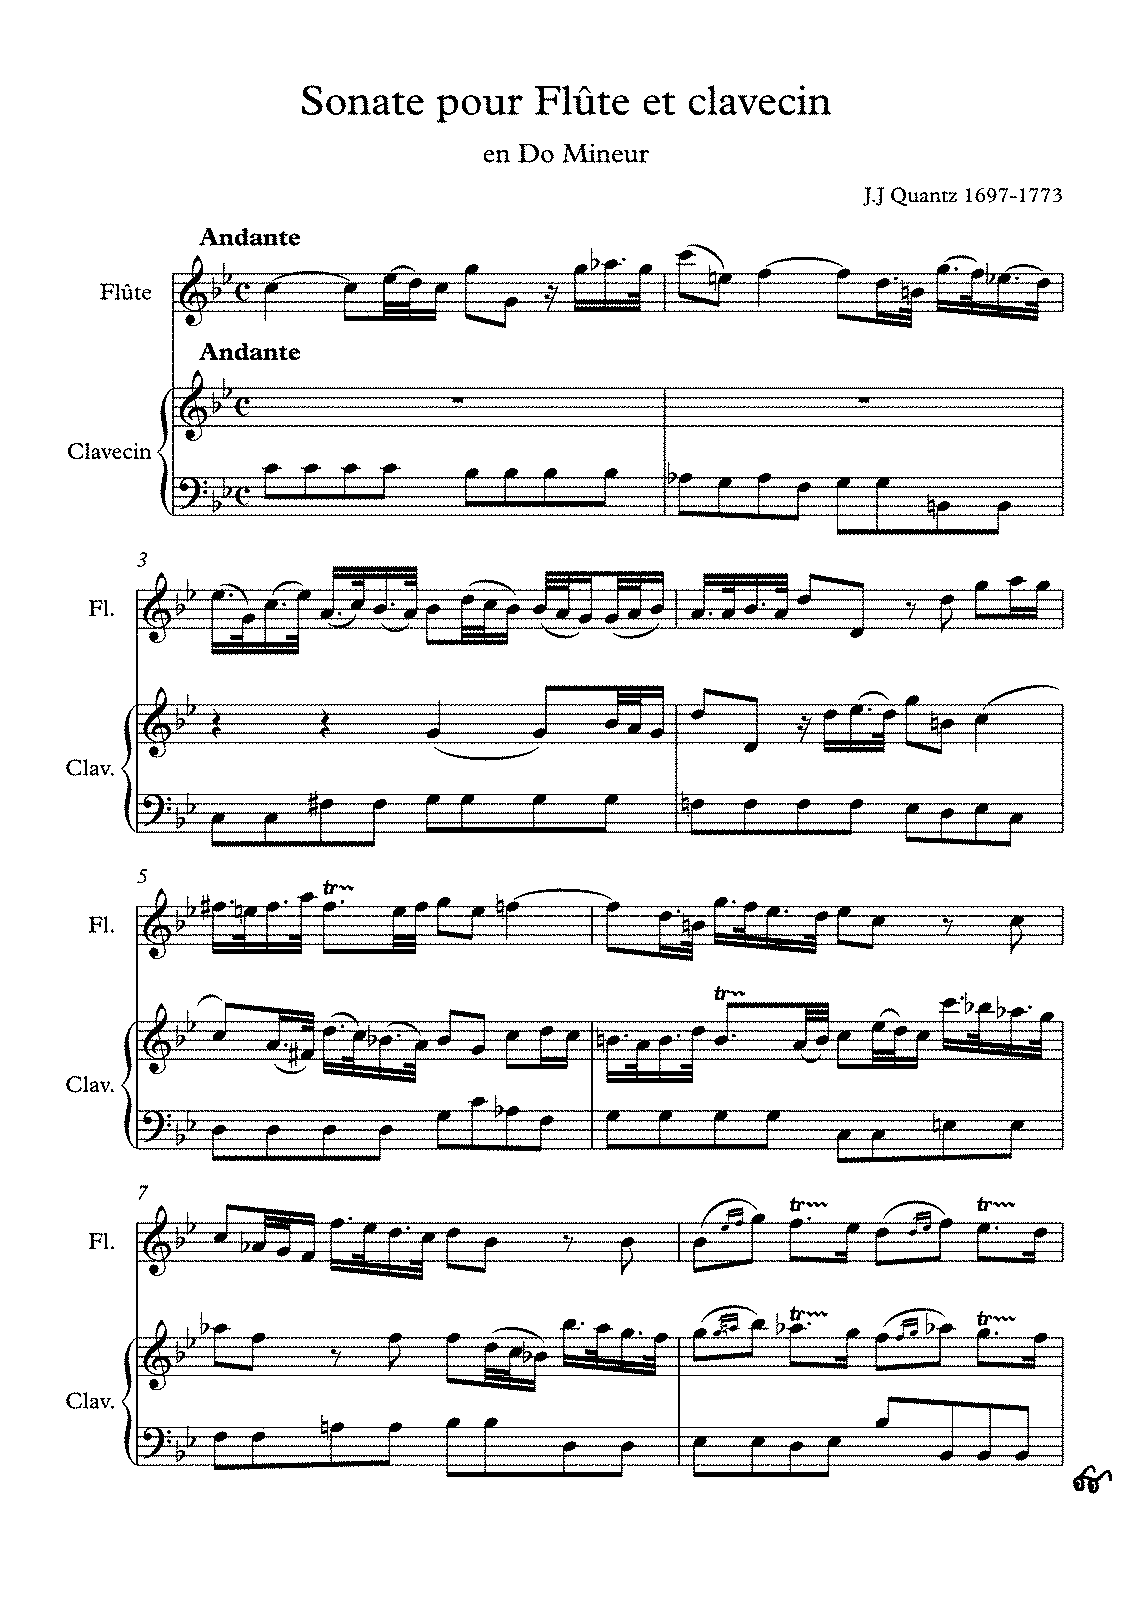 PMLP75026-trio Sonata in C minor, QV 2Anh.4 arrangement flute et clavecin full.pdf